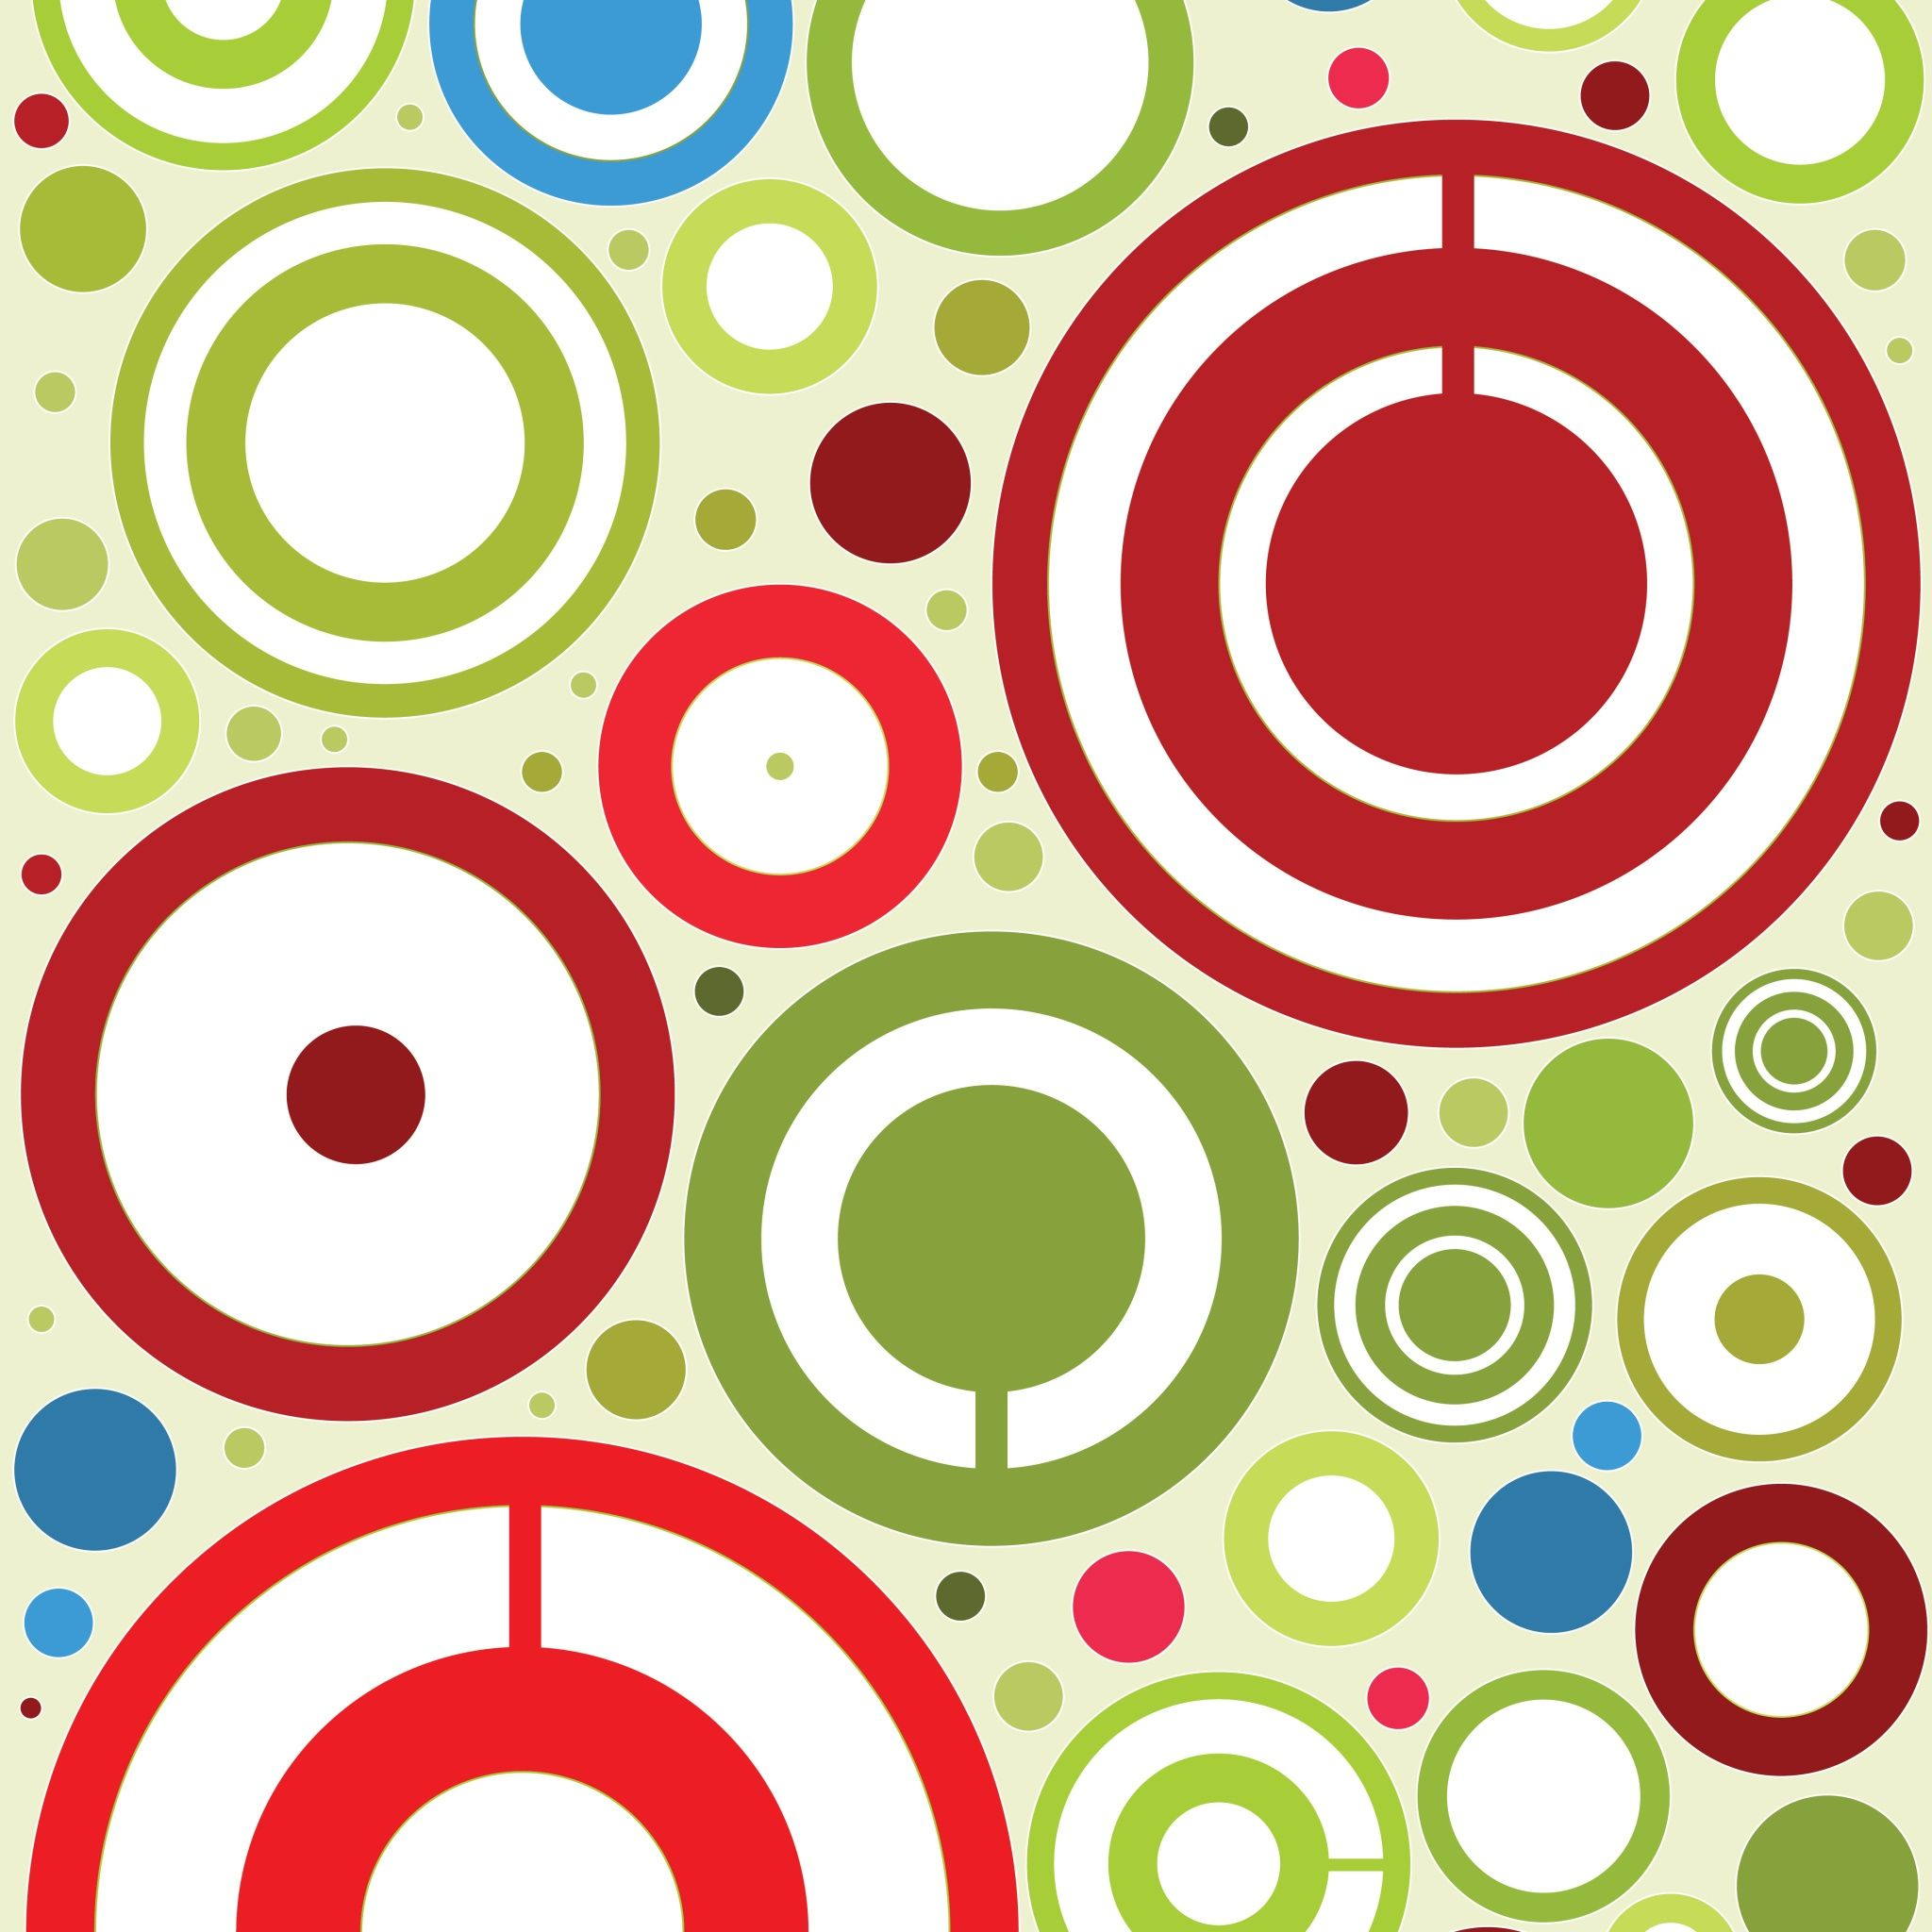 Circles Wallpapers - 4USkY.com